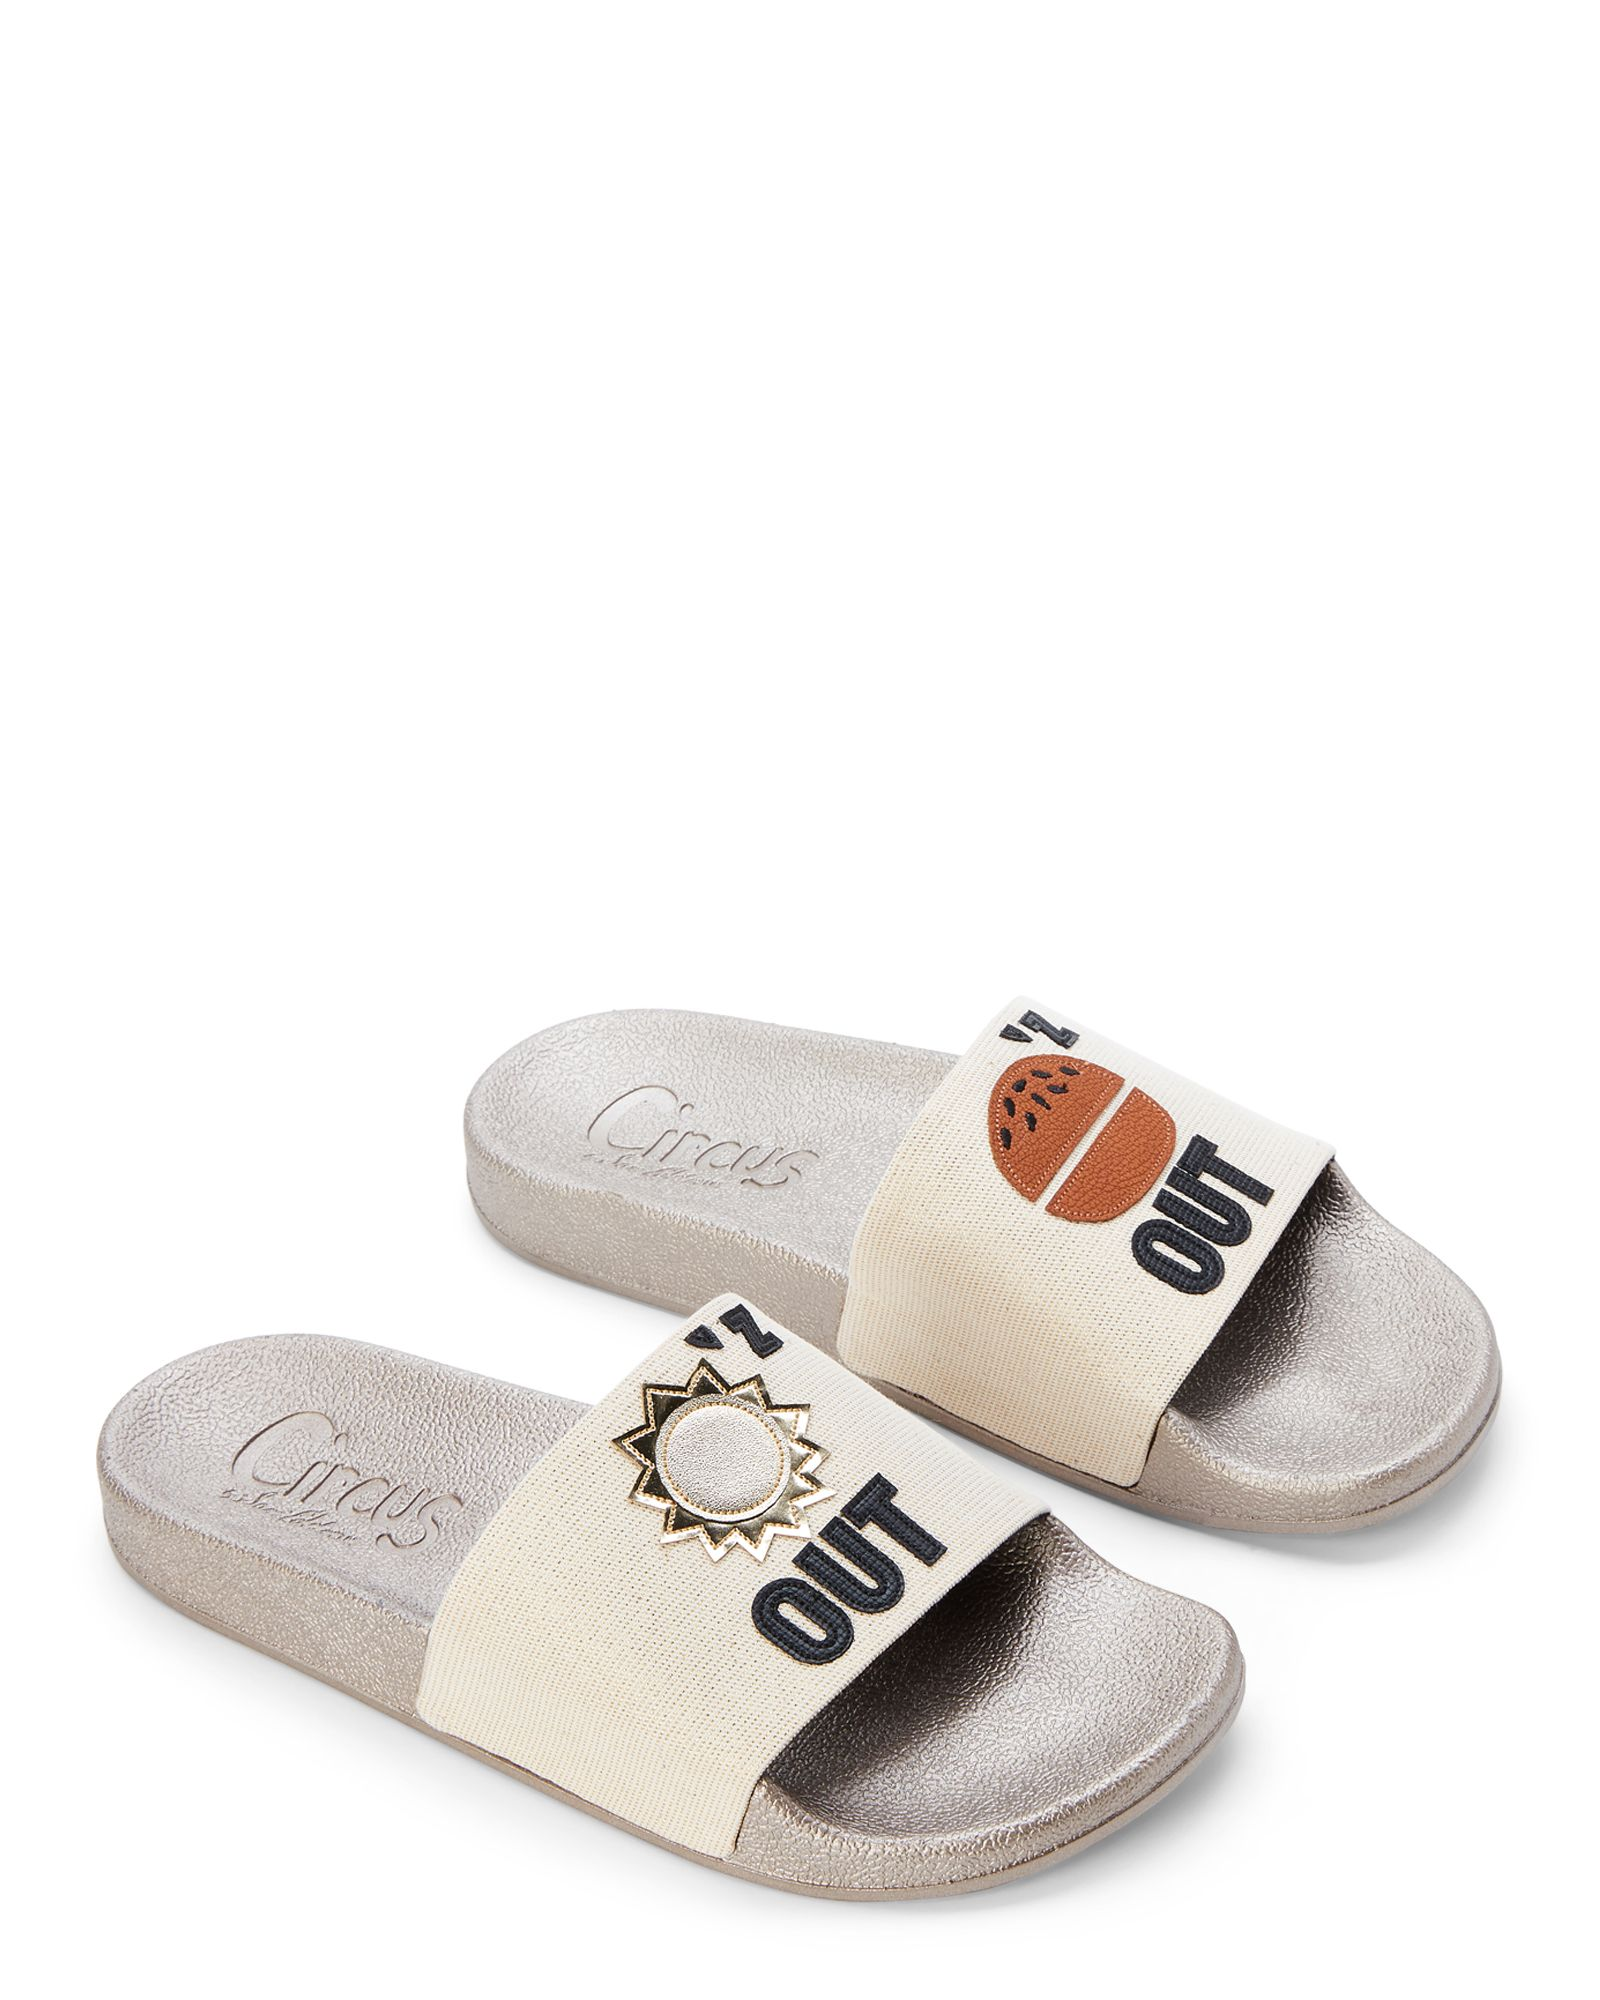 5e1c30bf8f9d Circus By Sam Edelman Ivory Suns Out Buns Out Flynn Slide Sandals ...